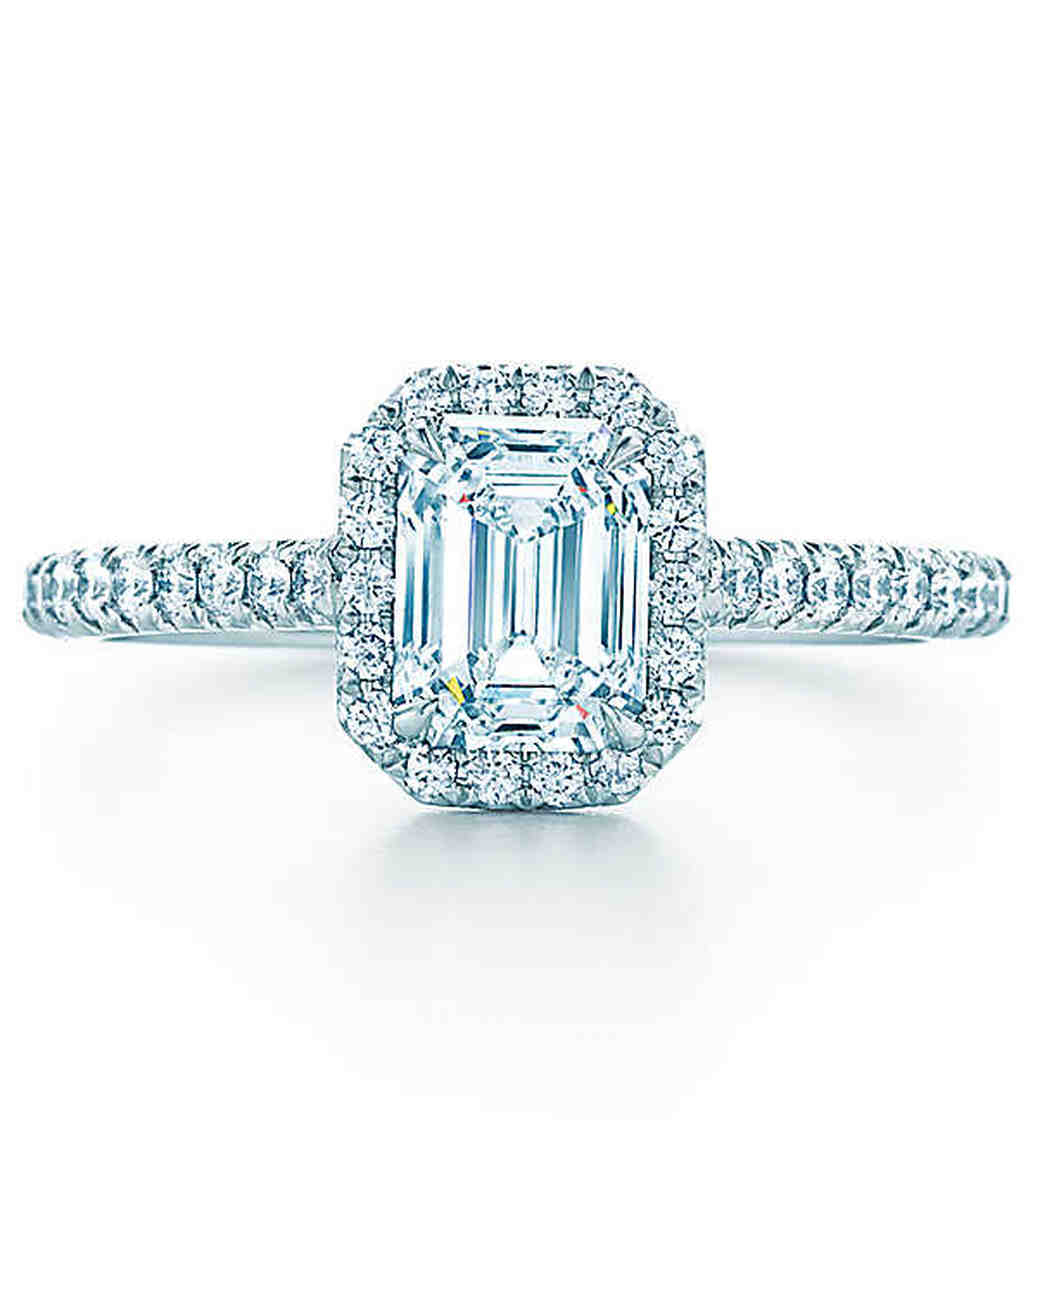 Tiffany & Co. Emerald-Cut Engagement Ring